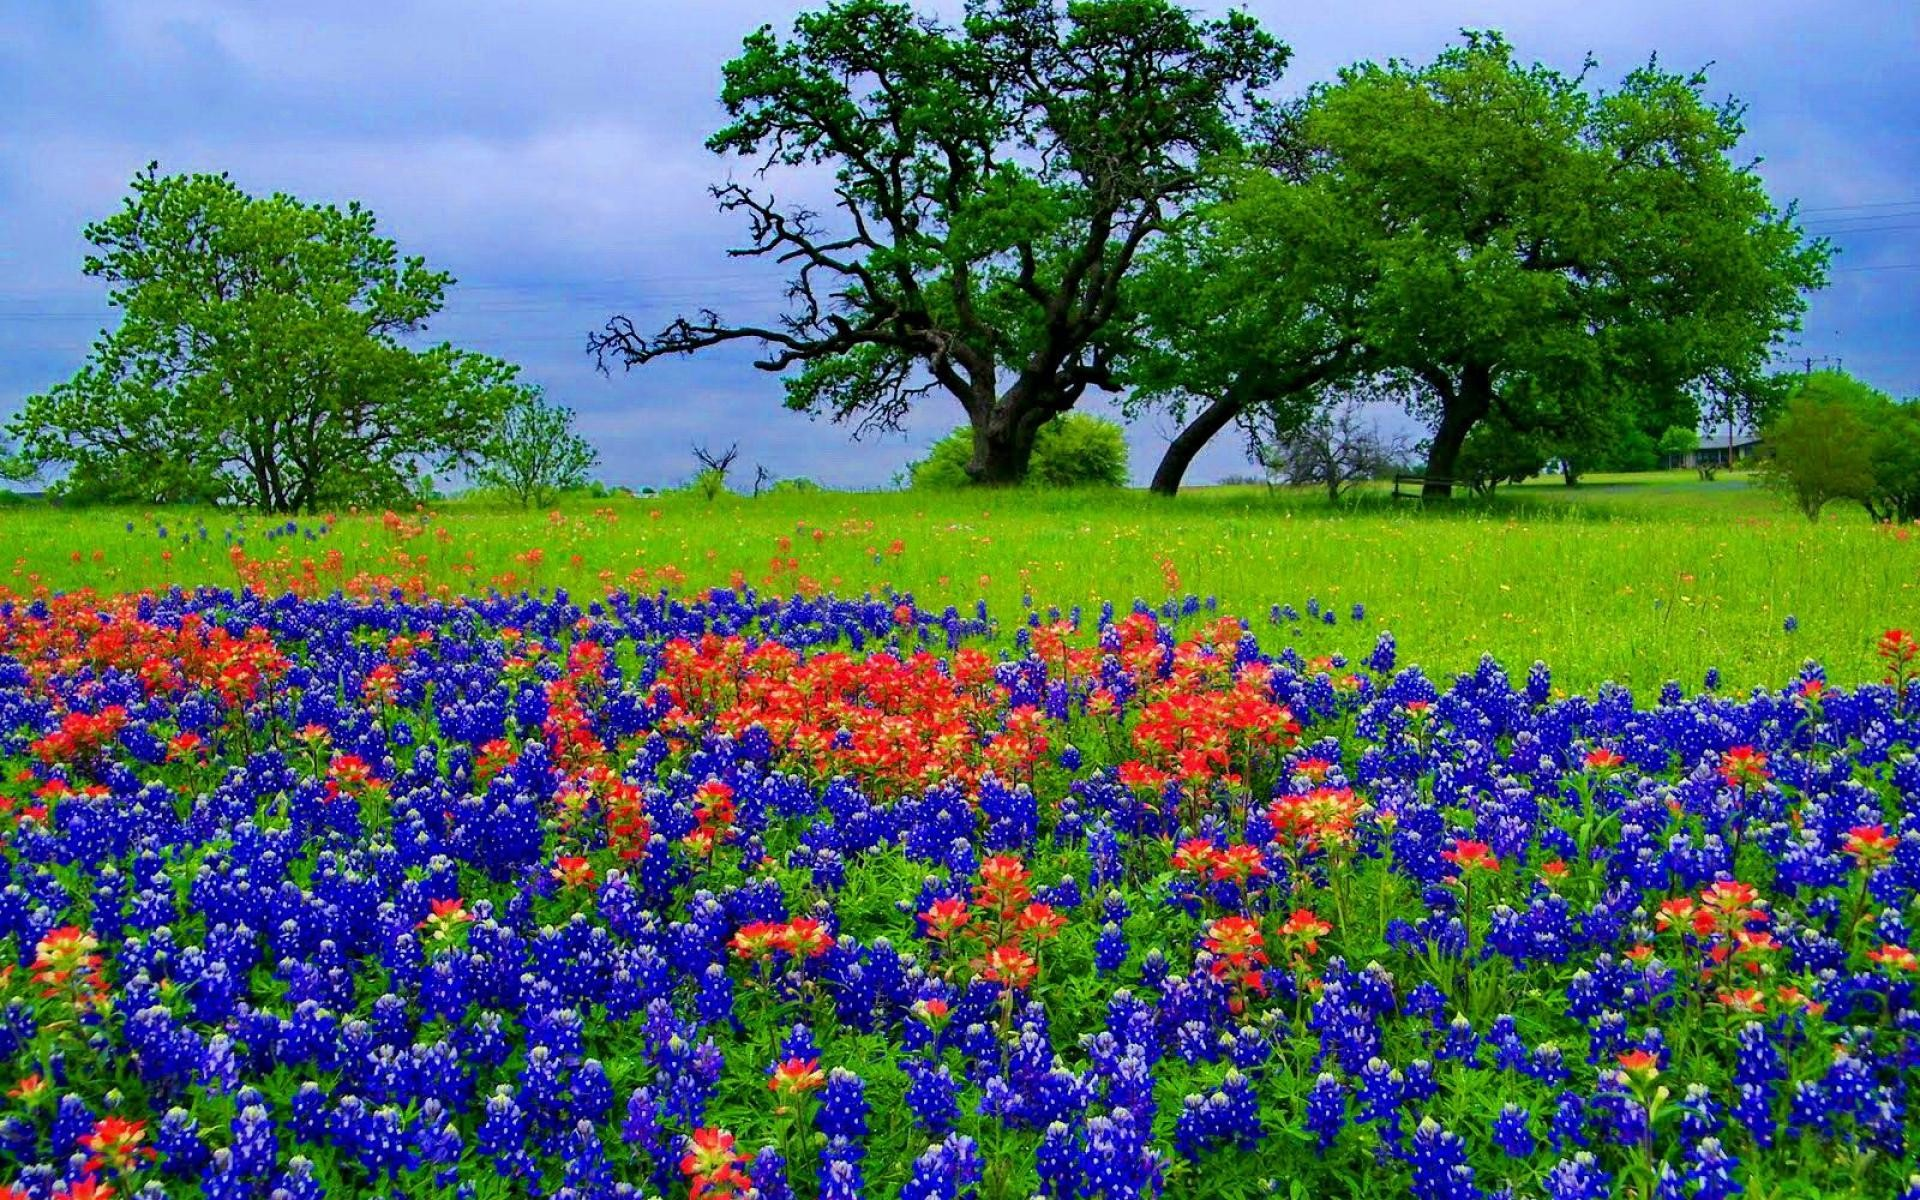 Res: 1920x1200, Texas Bluebonnets Wallpapers 7 - 1920 X 1200